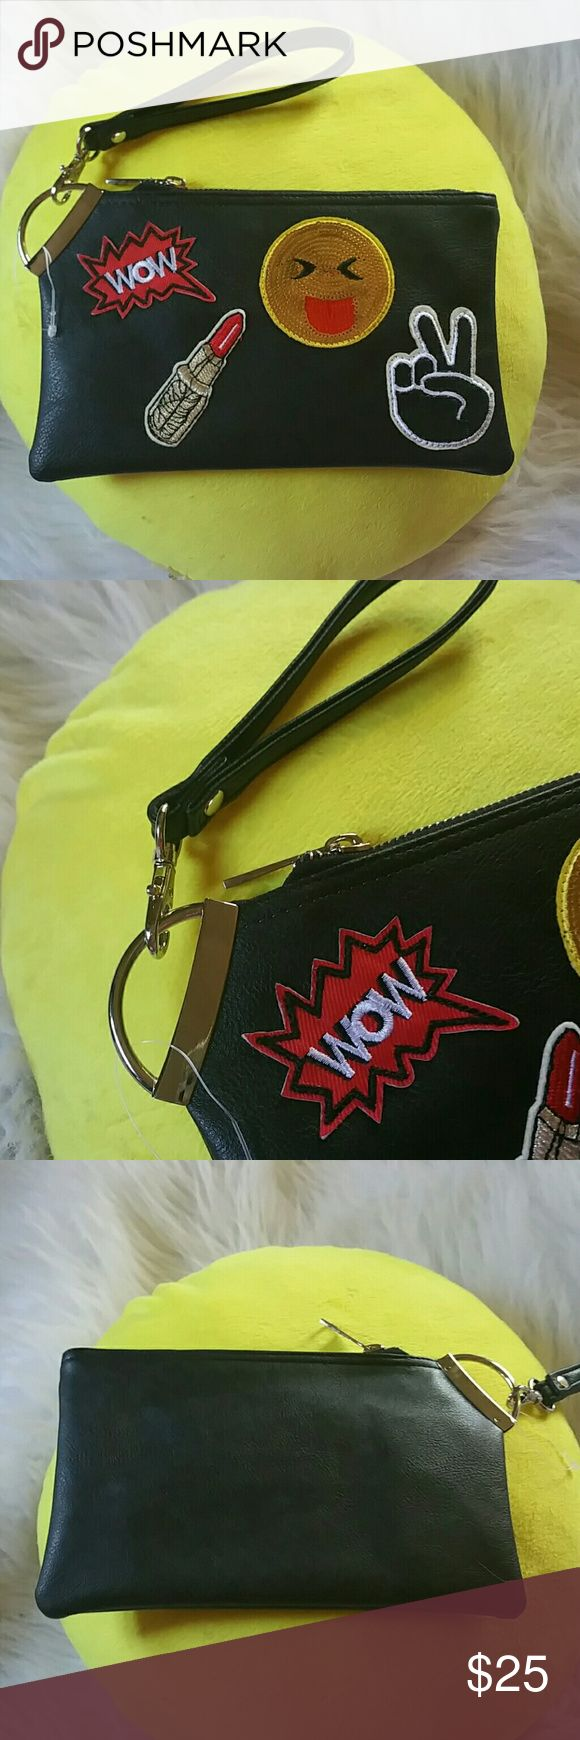 BNWT- CUTEST CLUTCH/WRISTLET Black with peace sign, lipstick, Emoji sticking out the tongue and wow! Brand new black with black wristlet wristlet can come off to use as a clutch great for a night out with the girls maybe a movie or a  present Boutique  Bags